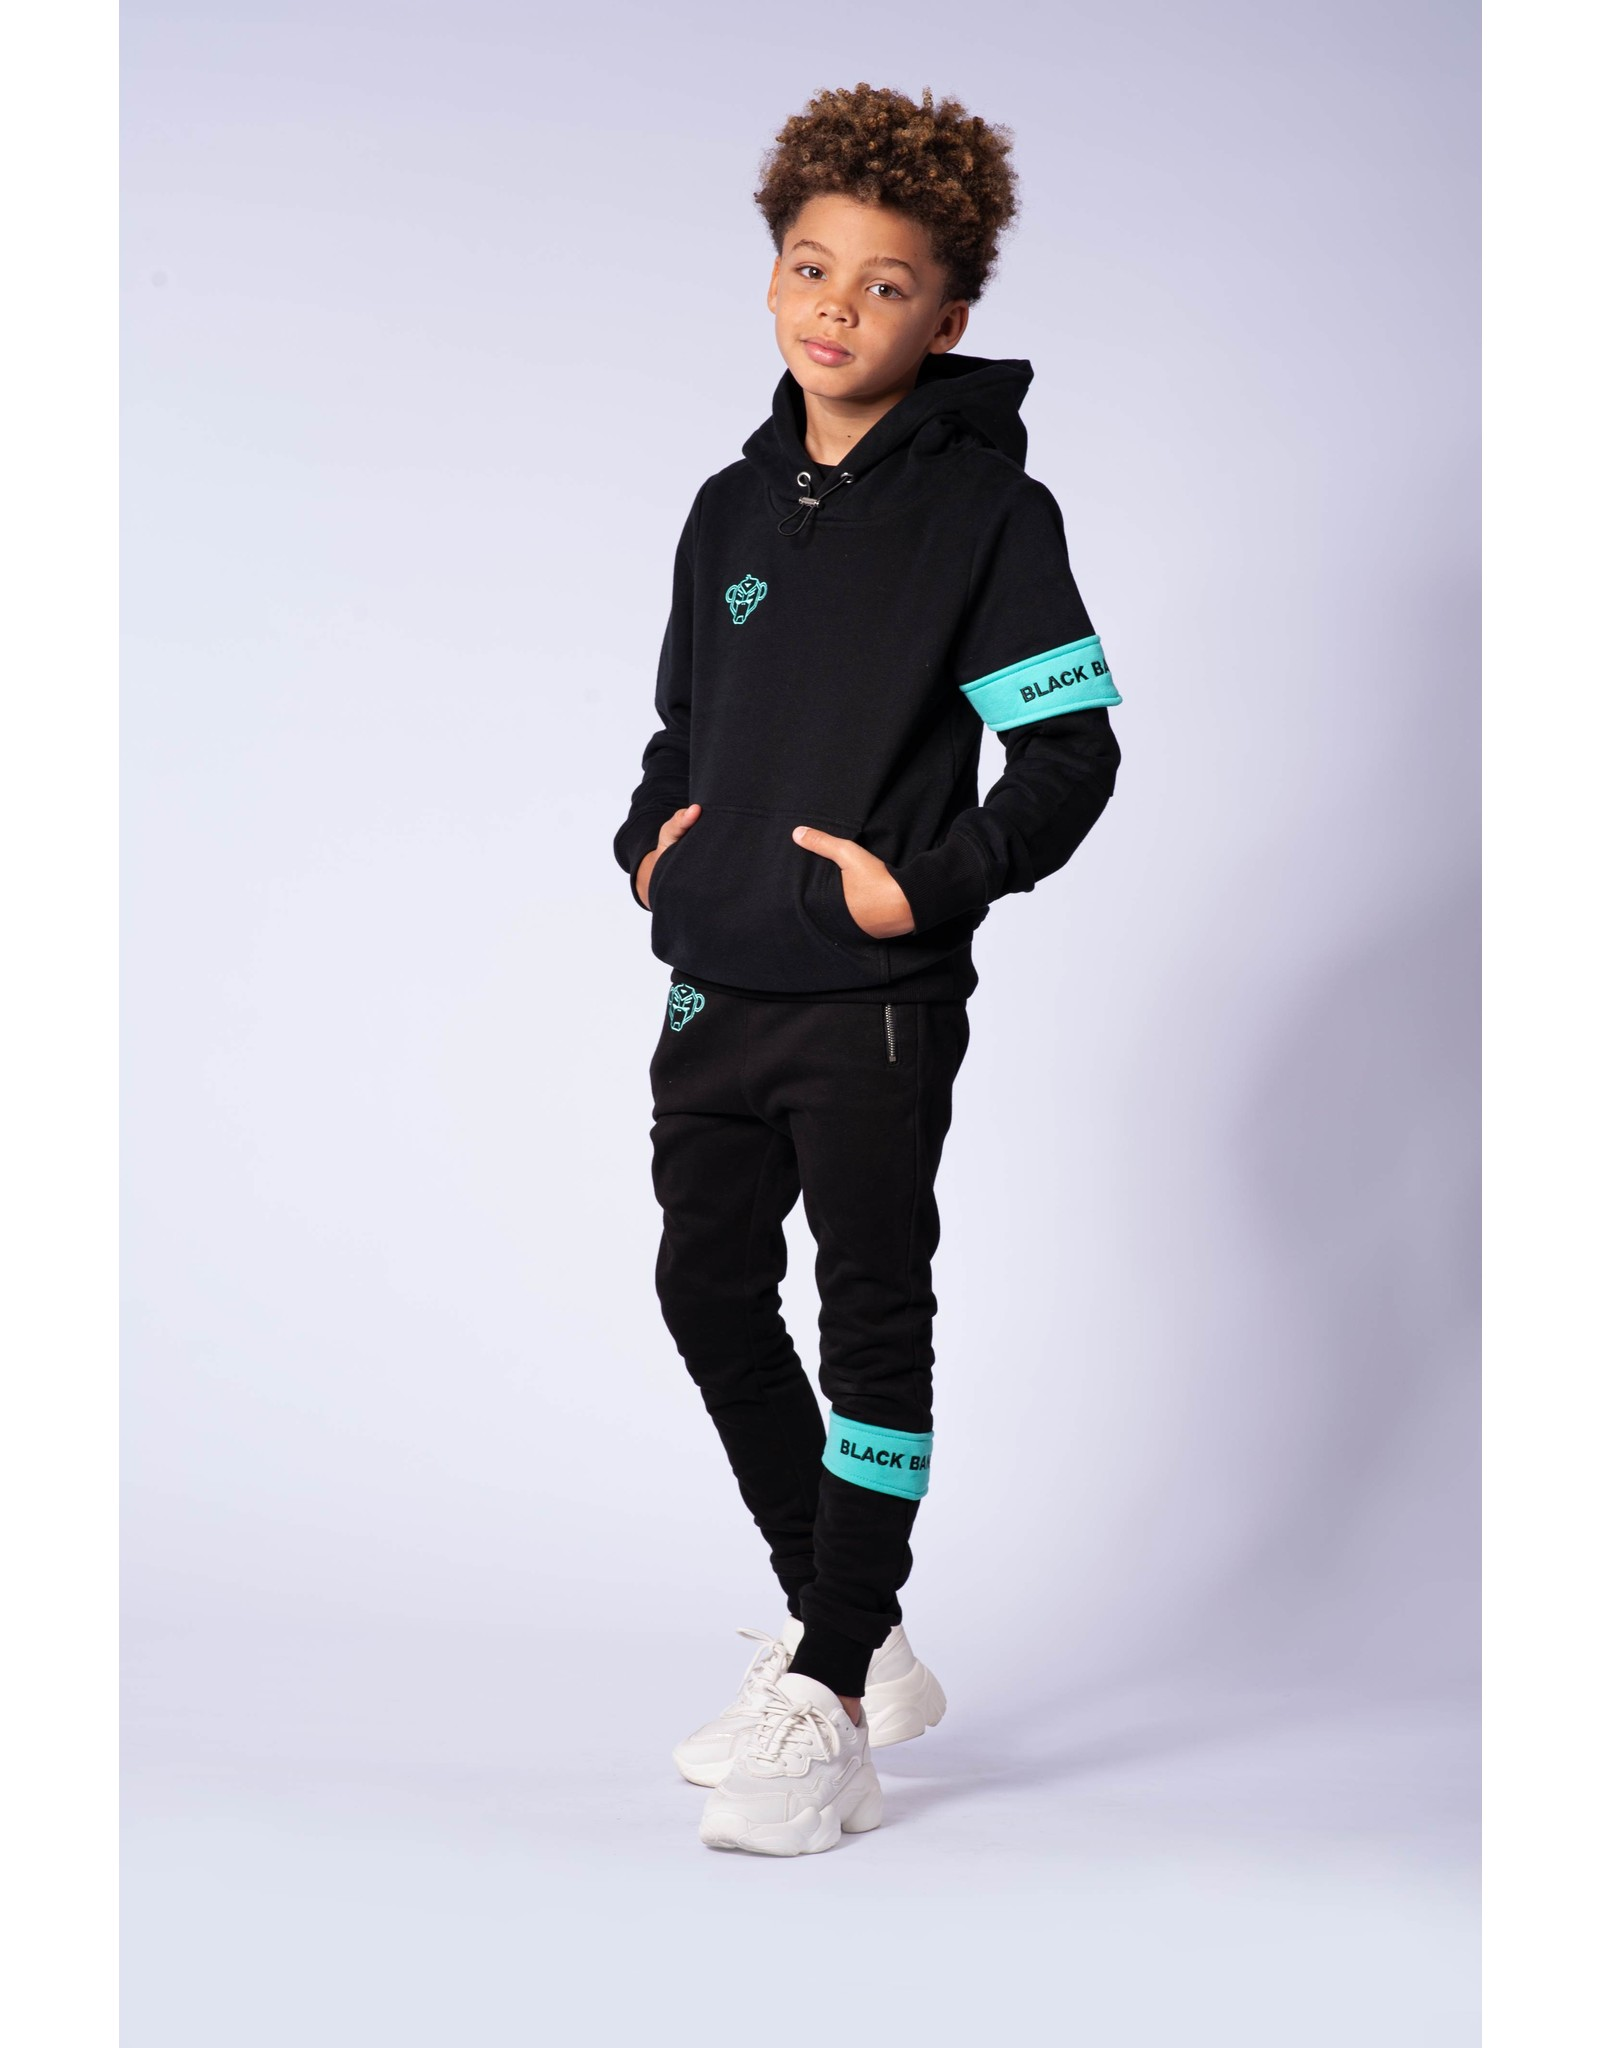 Black Bananas Jr. Command Hoody